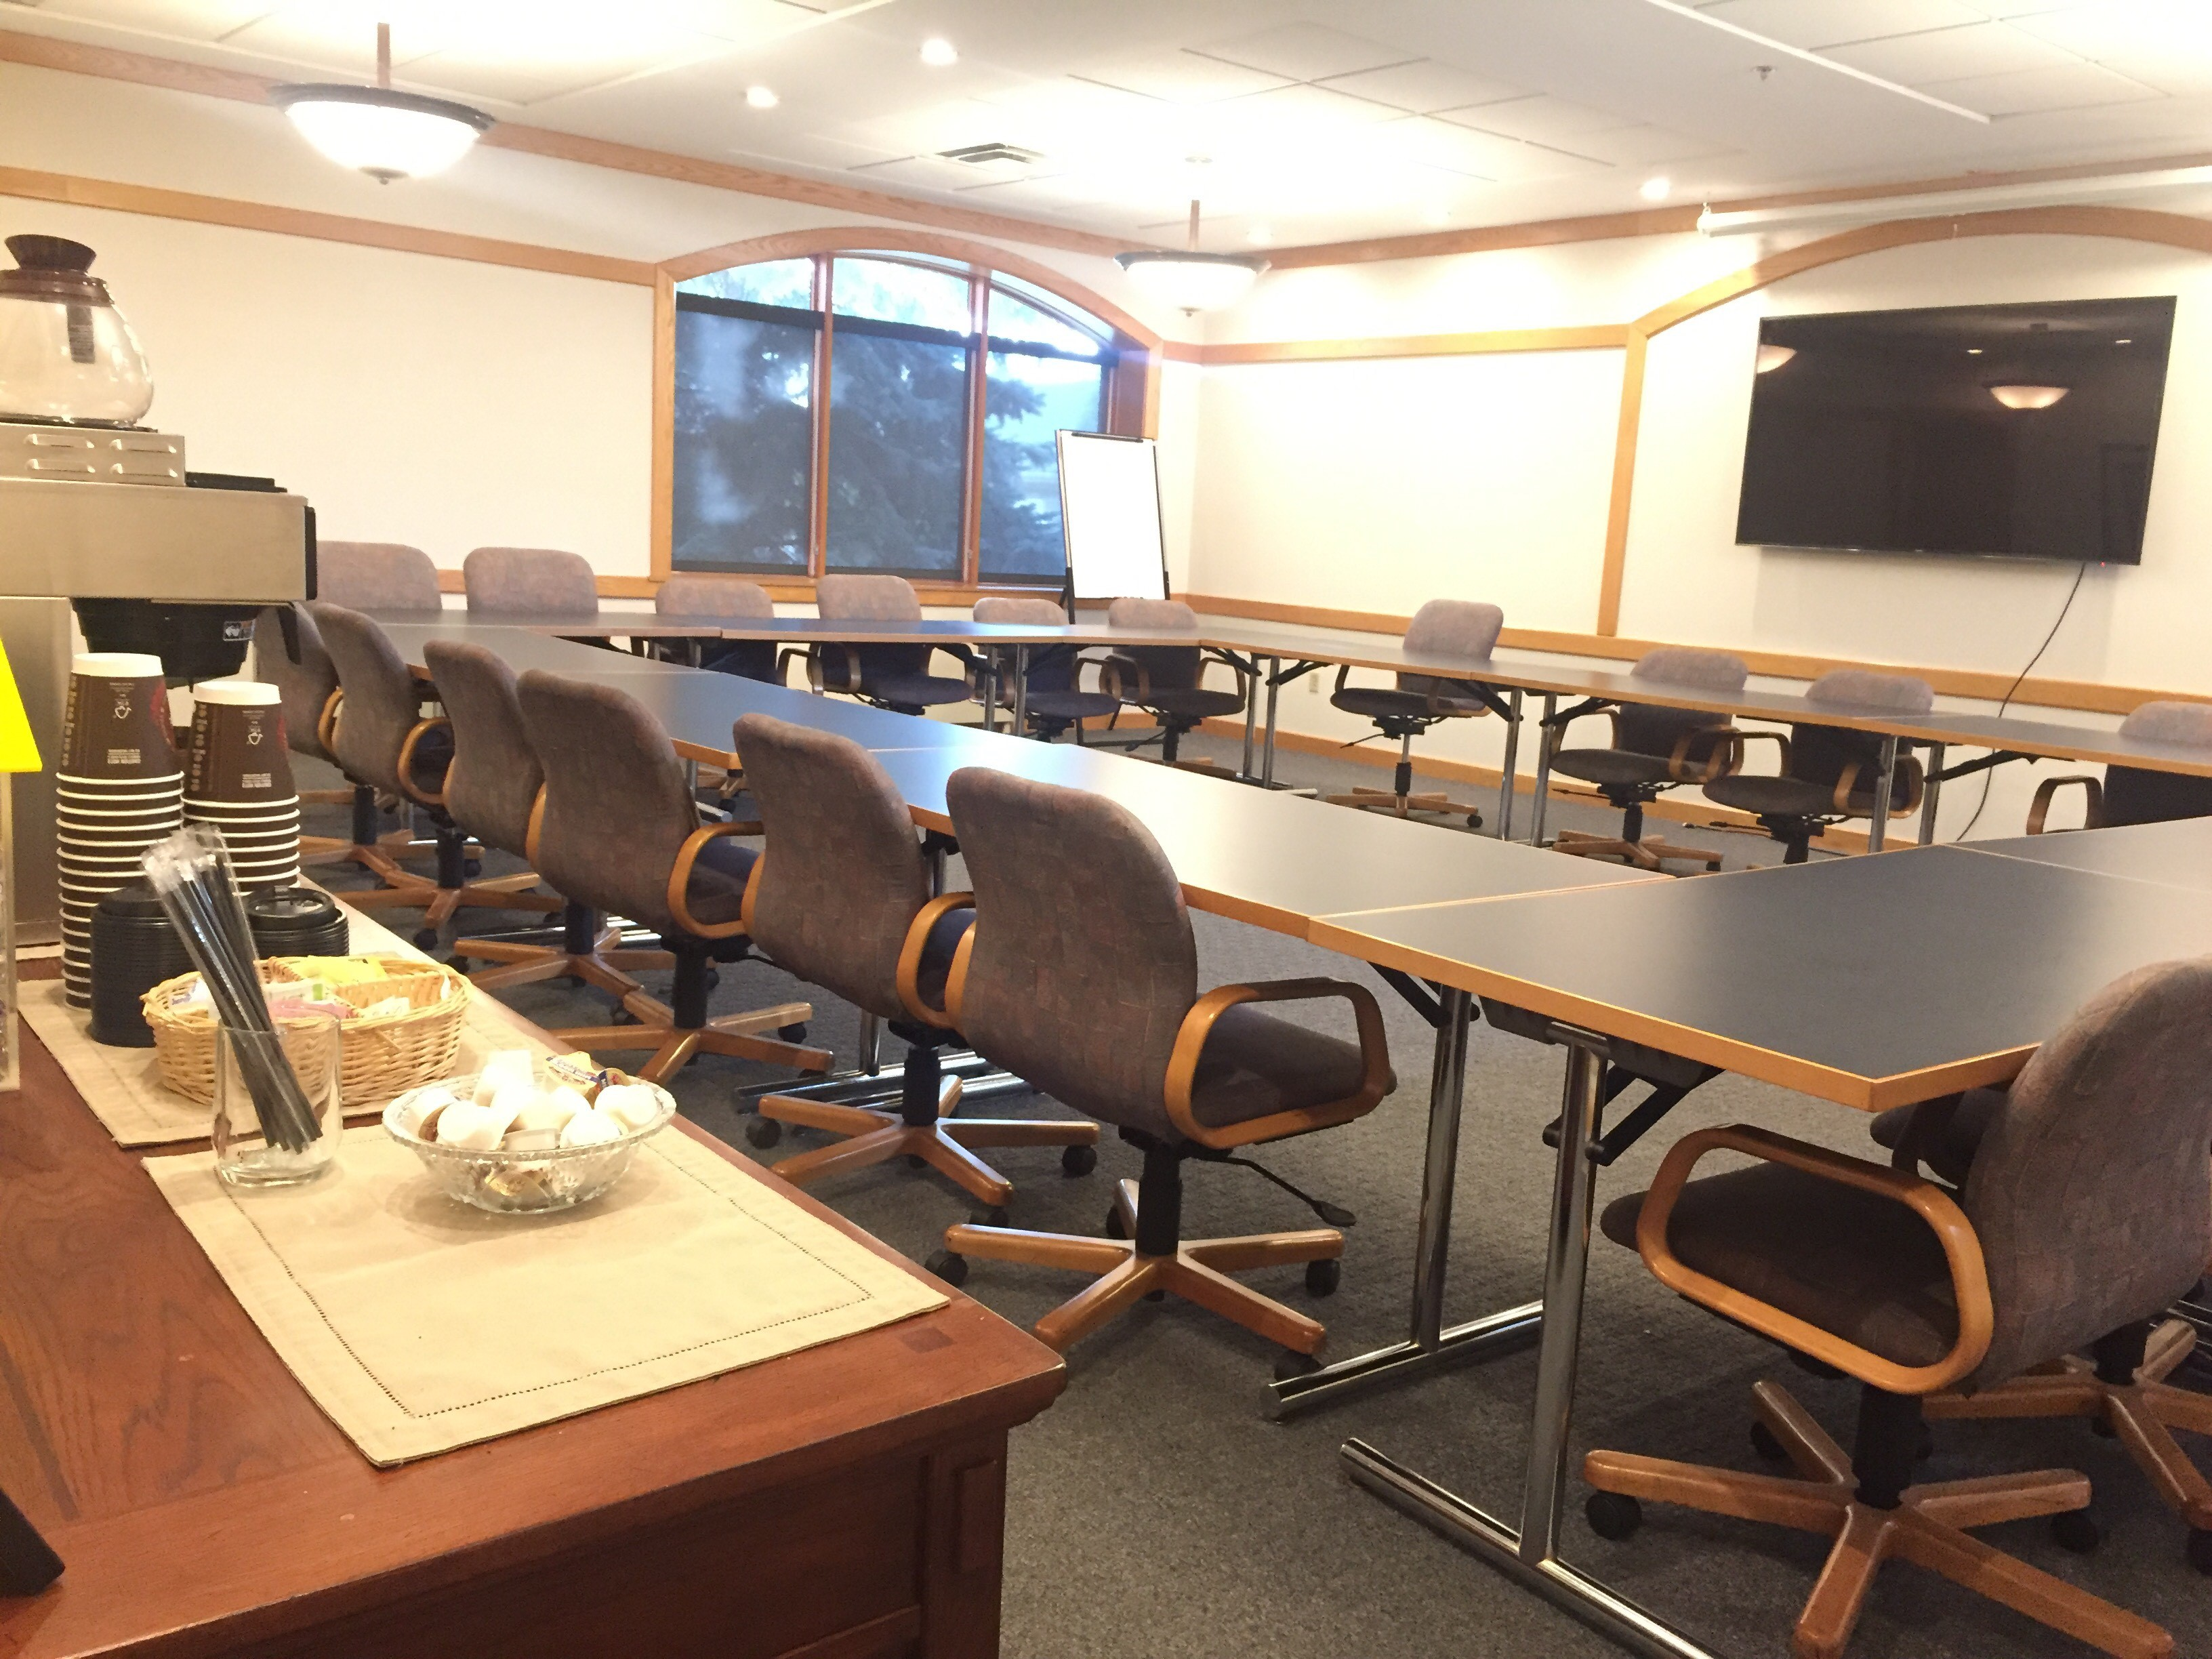 Doty Community Room, conference table & chairs